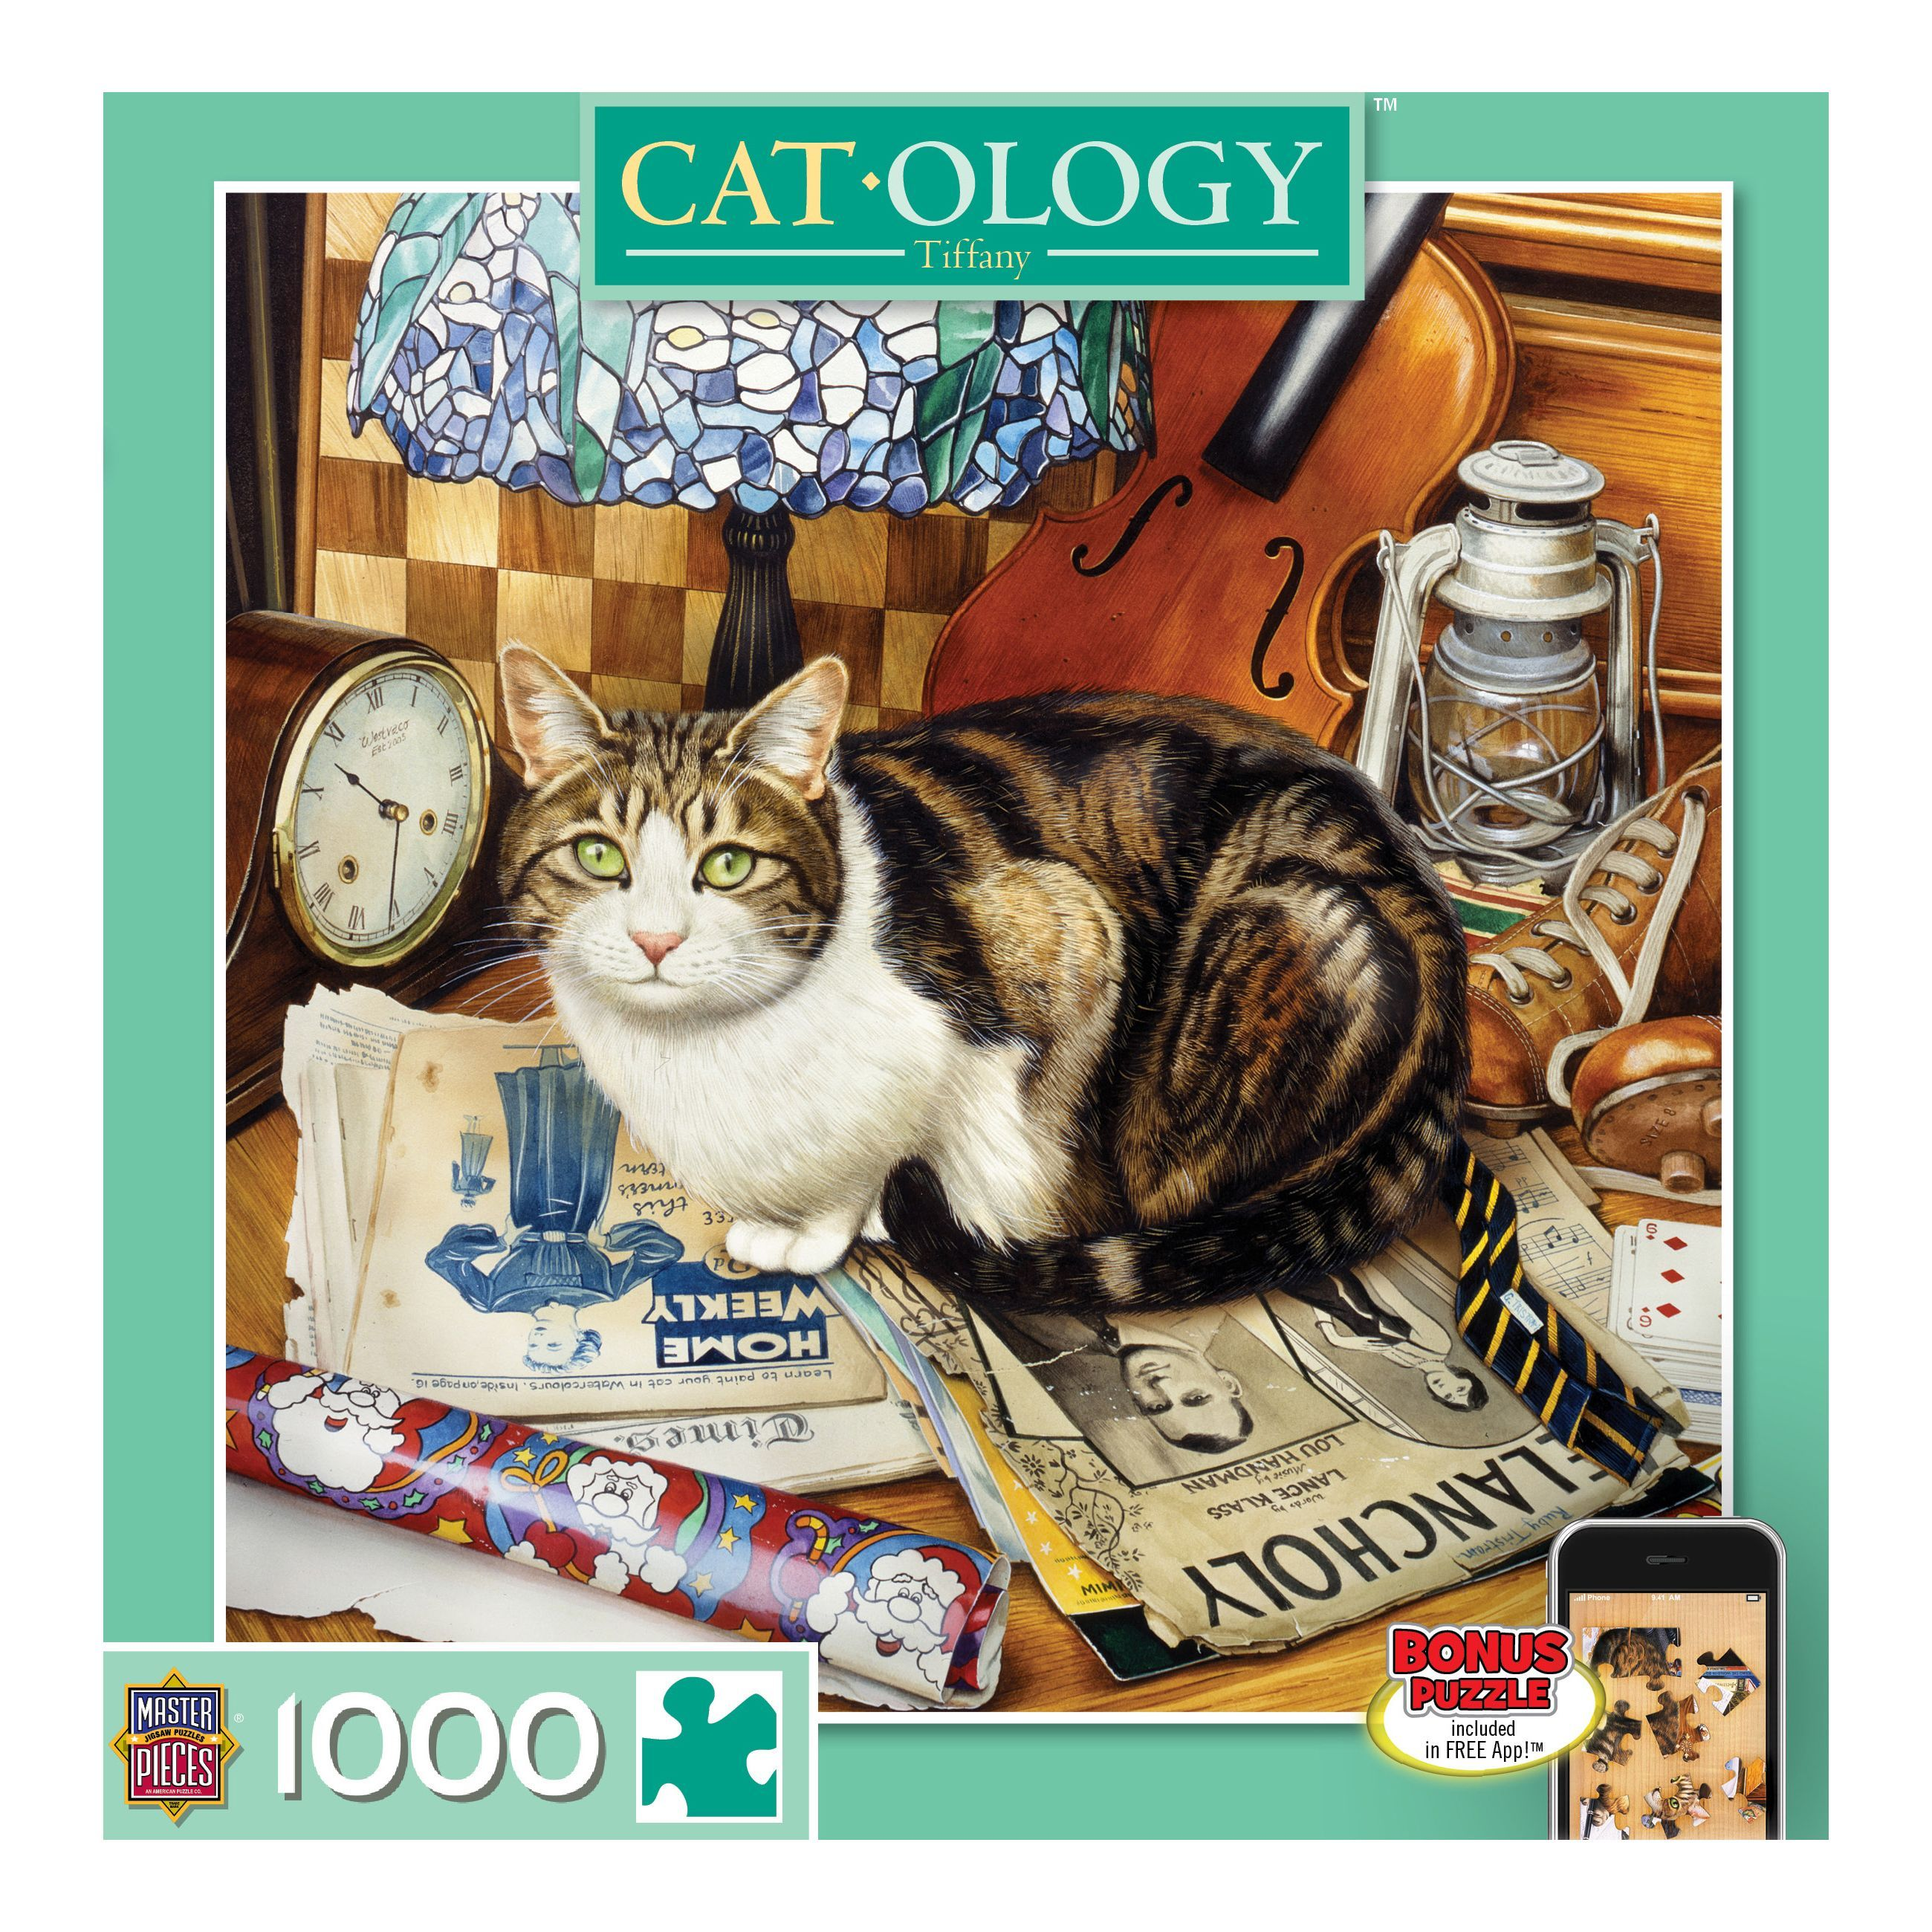 Geoffrey Tristram's detailed images of cats at work, at play, and generally getting in the way have charmed their way into the hearts of cat lovers. He is known broadly for his love of detail.